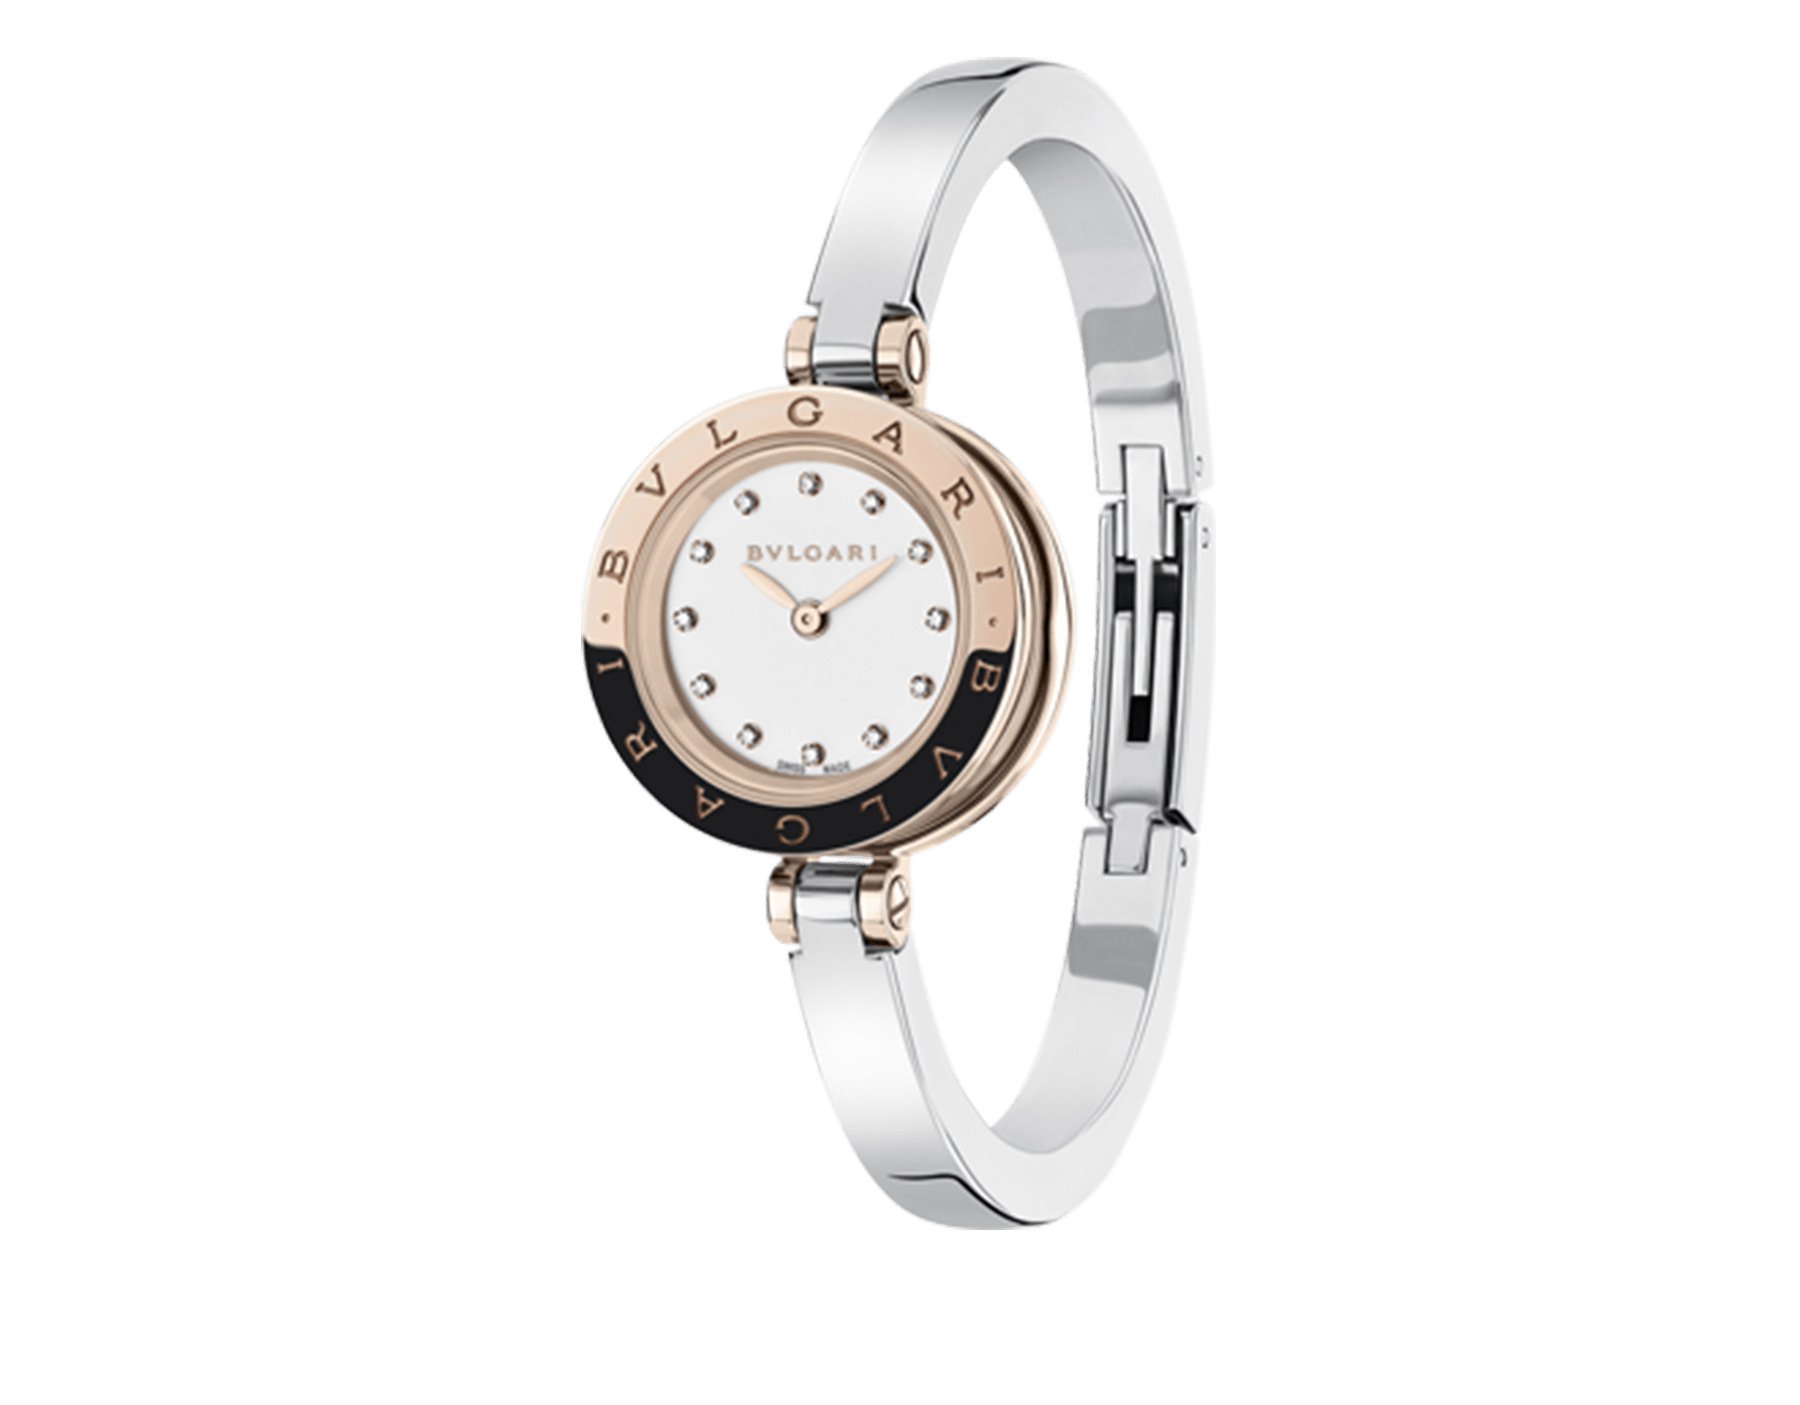 B.zero1 watch with stainless steel and 18 kt rose gold case, white lacquered dial set with diamond indexes and stainless steel bangle. Small size. 102418 image 1